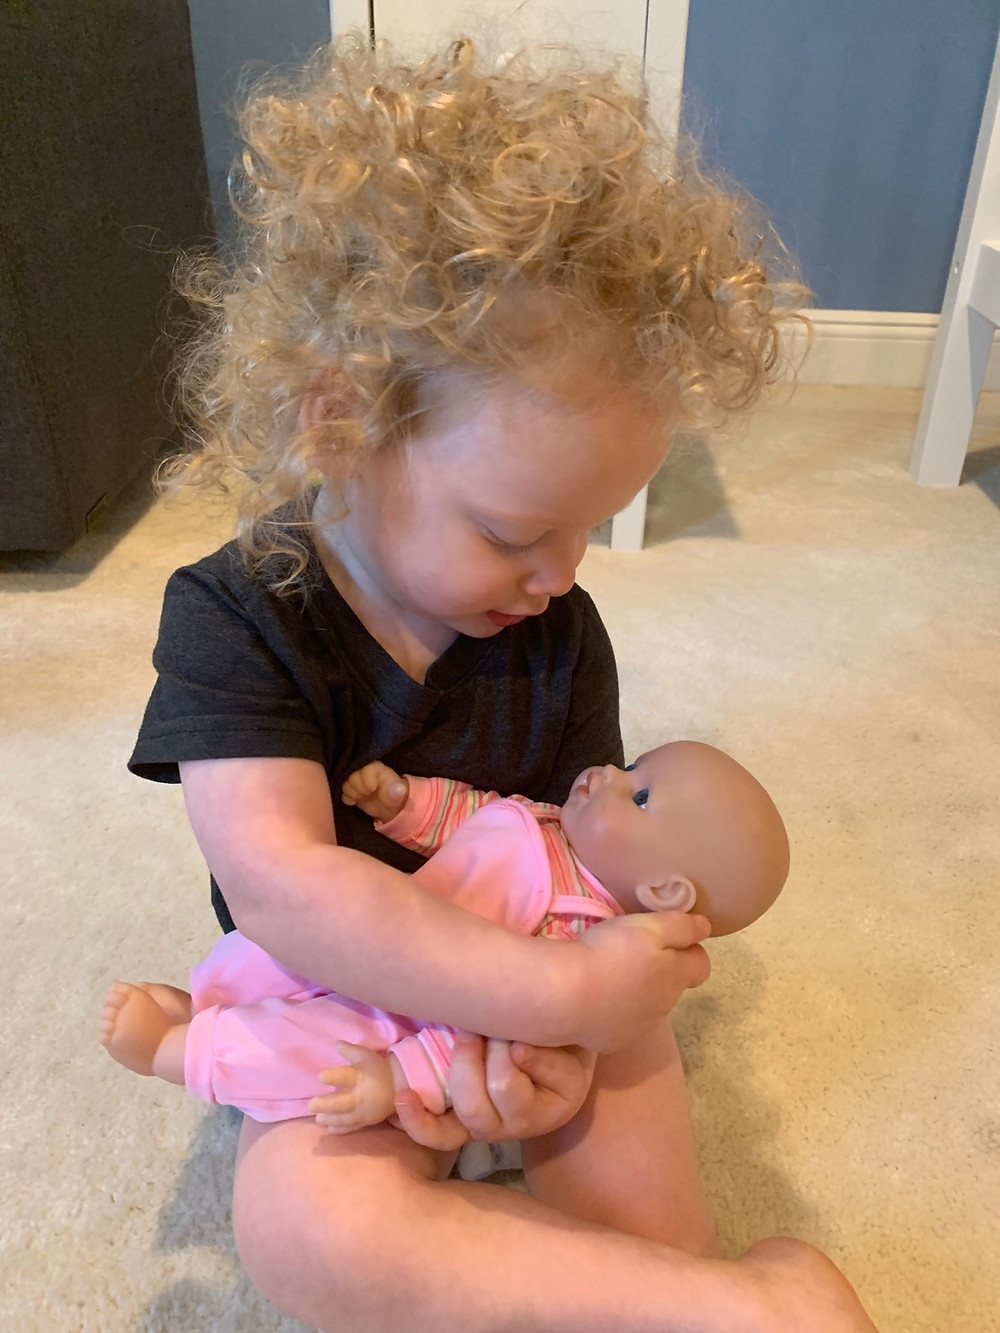 Toddler boy holding a baby girl doll